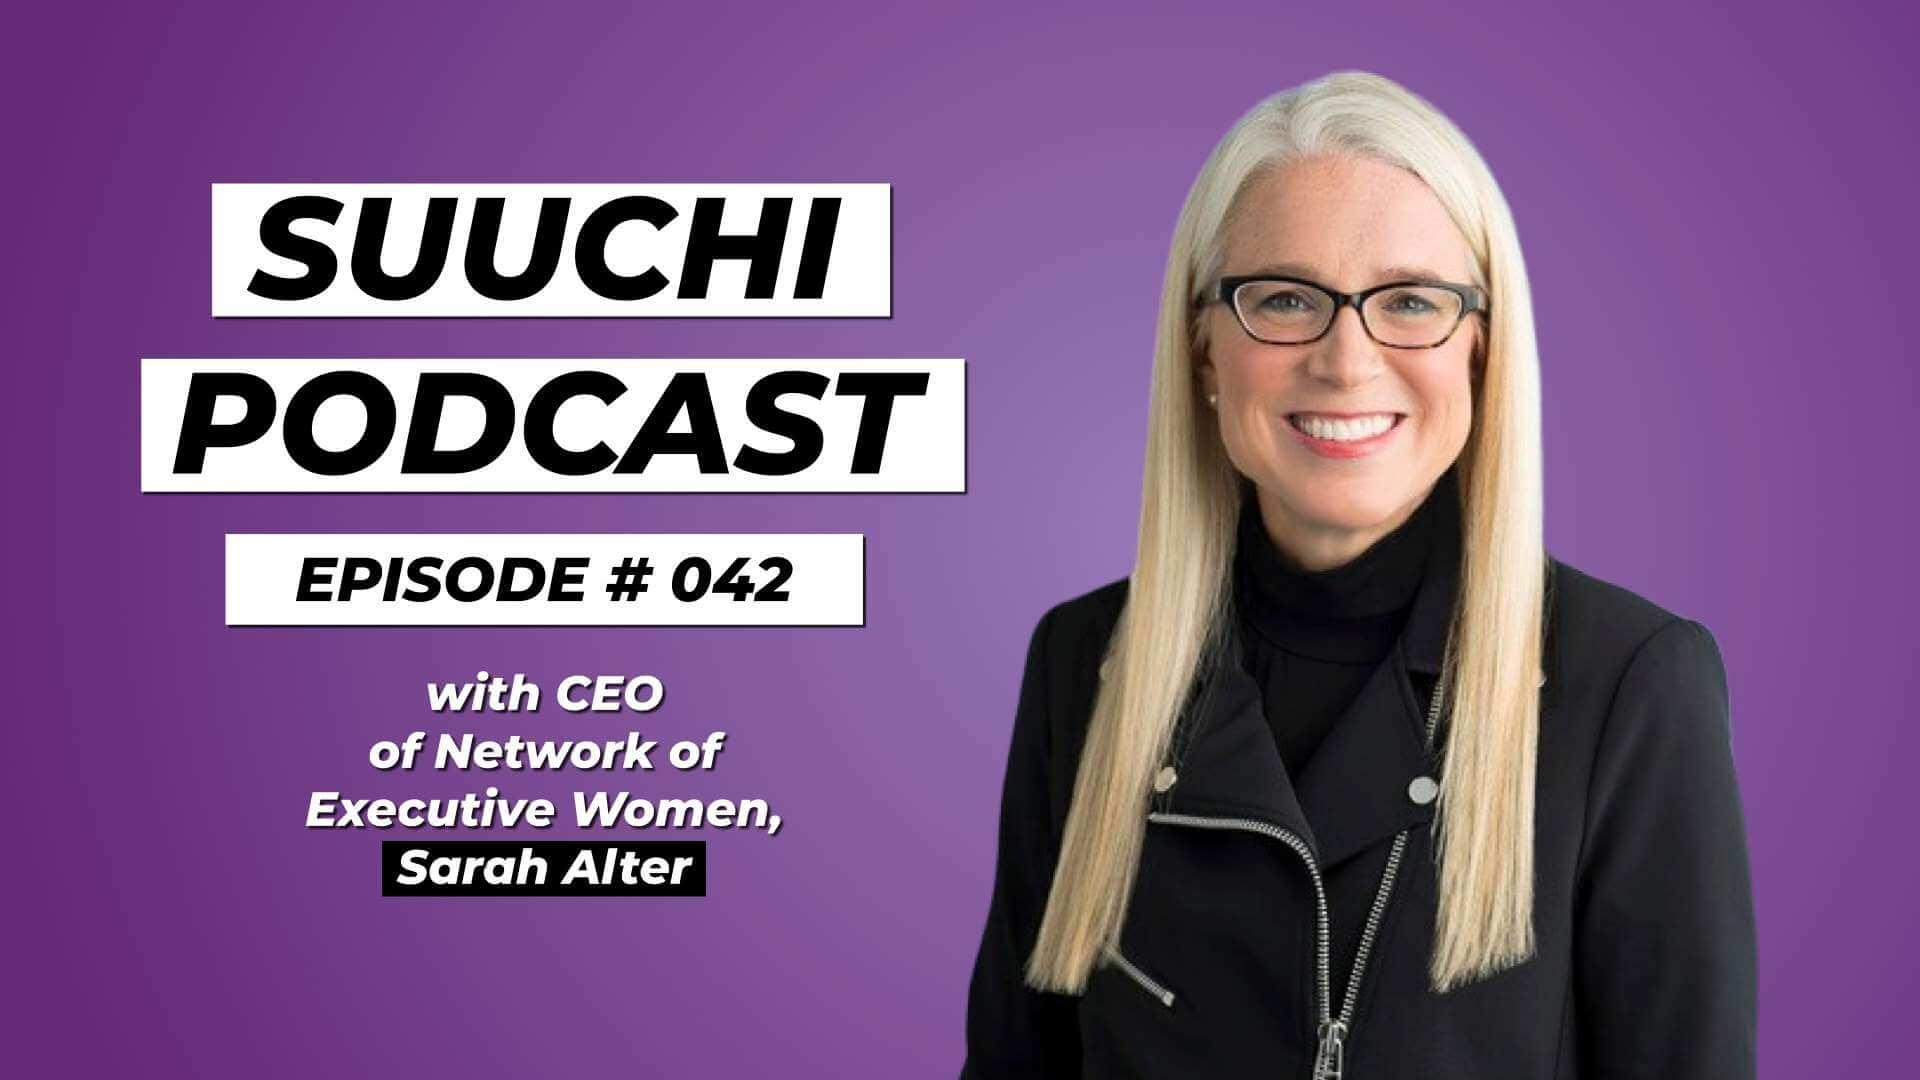 Suuchi Podcast #42: Sarah Alter, CEO of Network of Executive Women